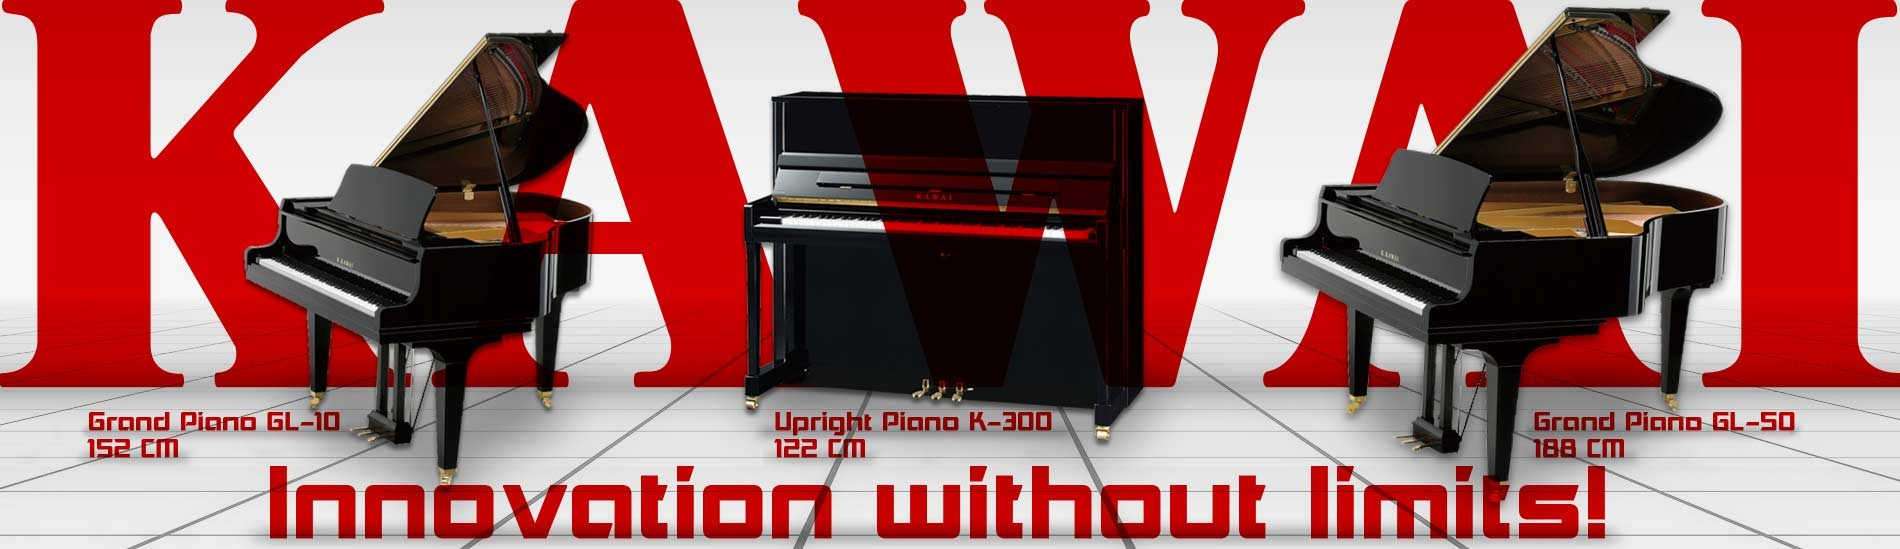 Kawai Acoustic Pianos - Innovation without limits!